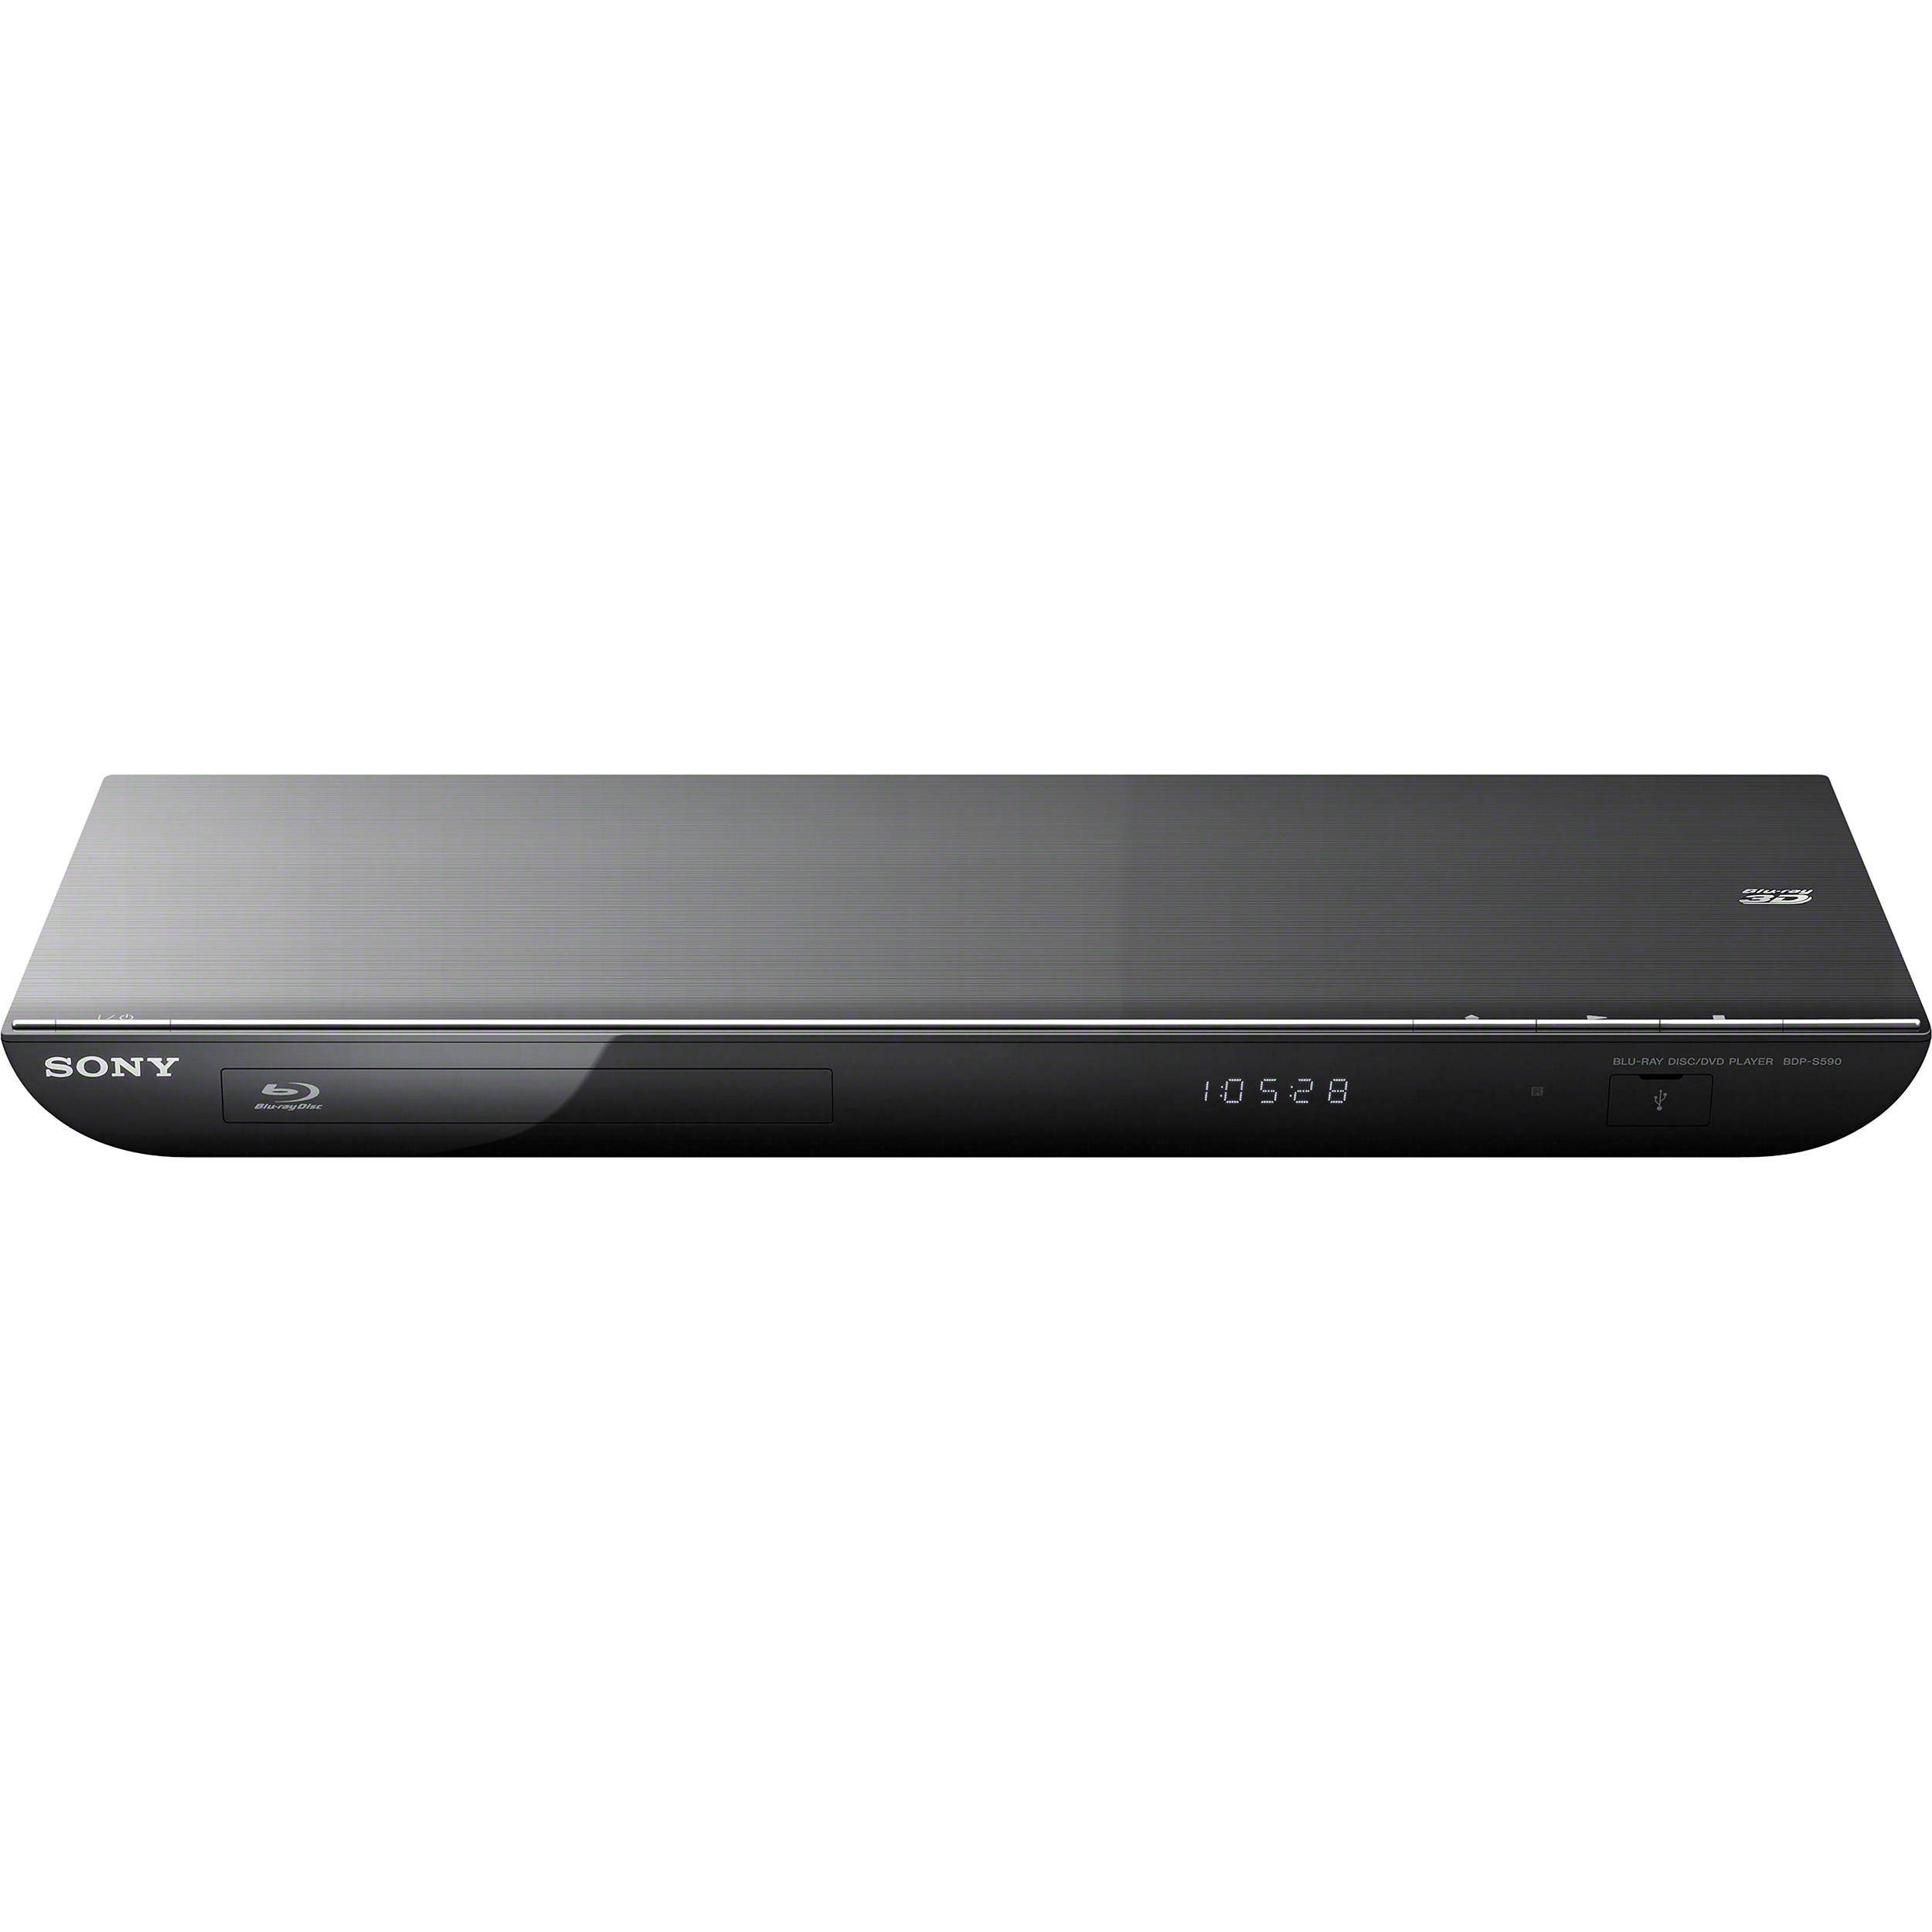 sony bdp s590 blu ray disc player bdps590 b h photo video. Black Bedroom Furniture Sets. Home Design Ideas